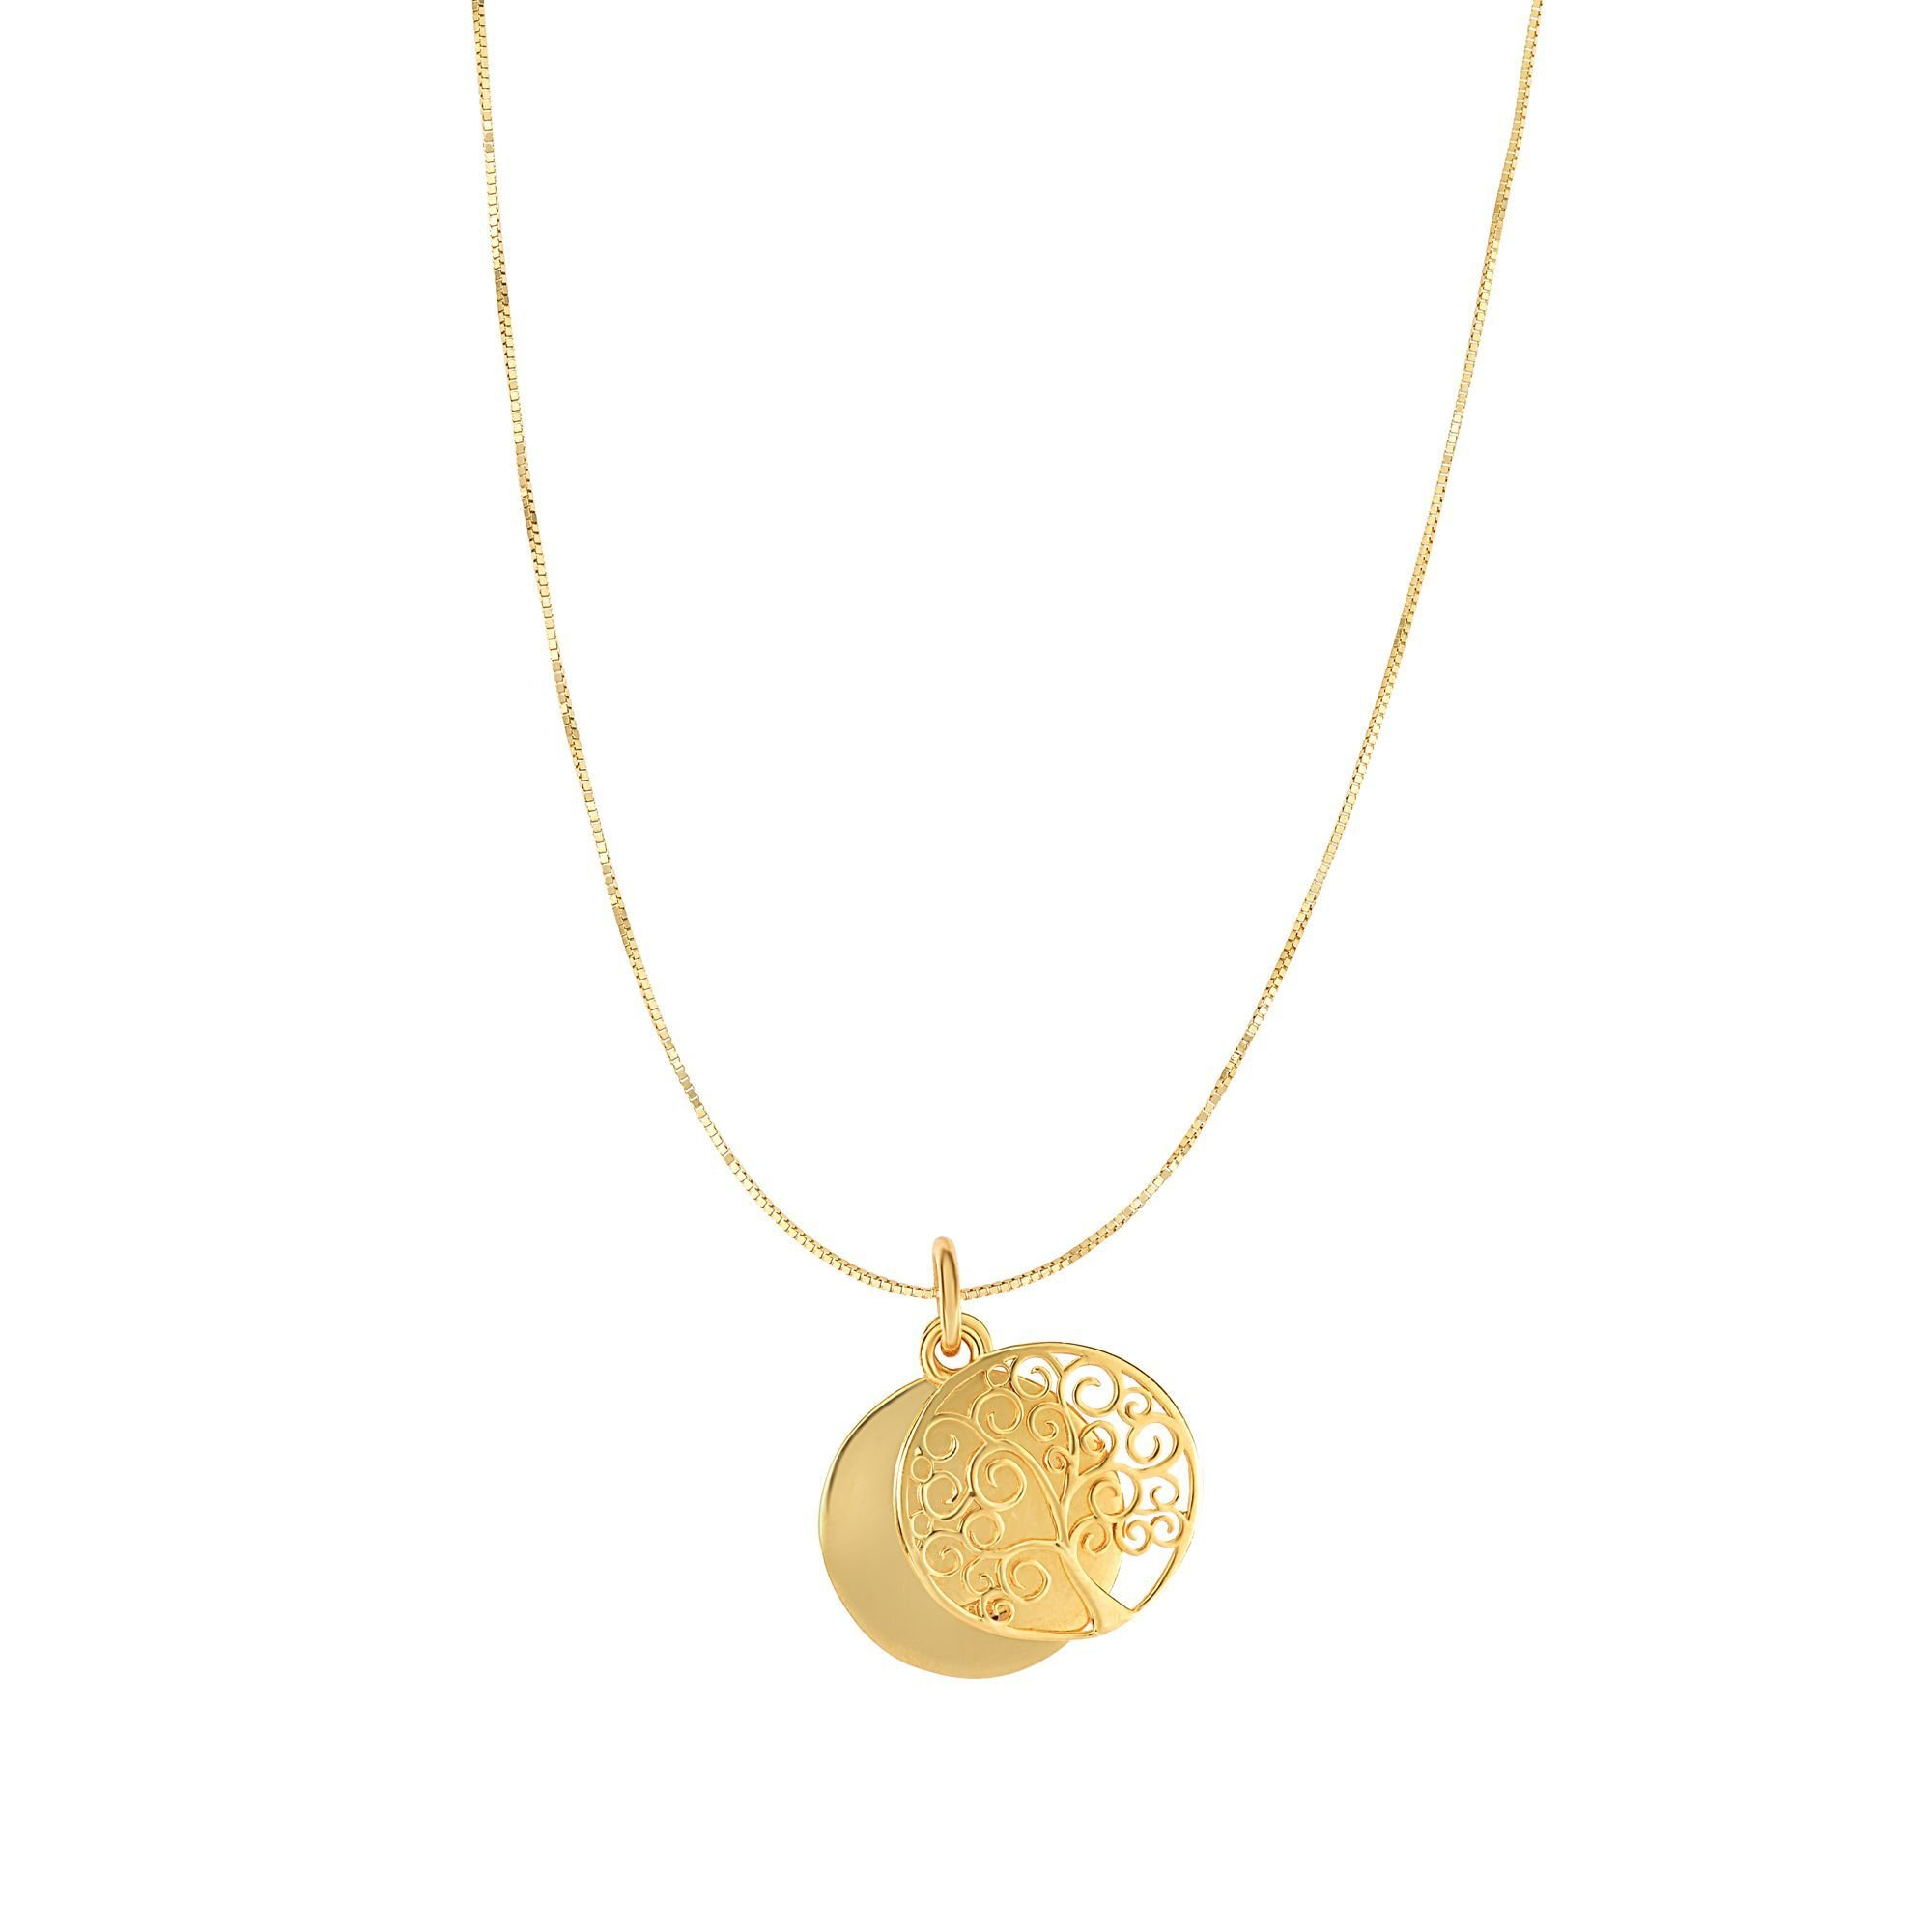 14kt Gold Yellow Finish 15x20mm High Polished Round Tree of Life Pendant on 14kt Gold 18'' Yellow Finish 0.49mm Shiny Square Classic Box Chain with Lobster Clasp